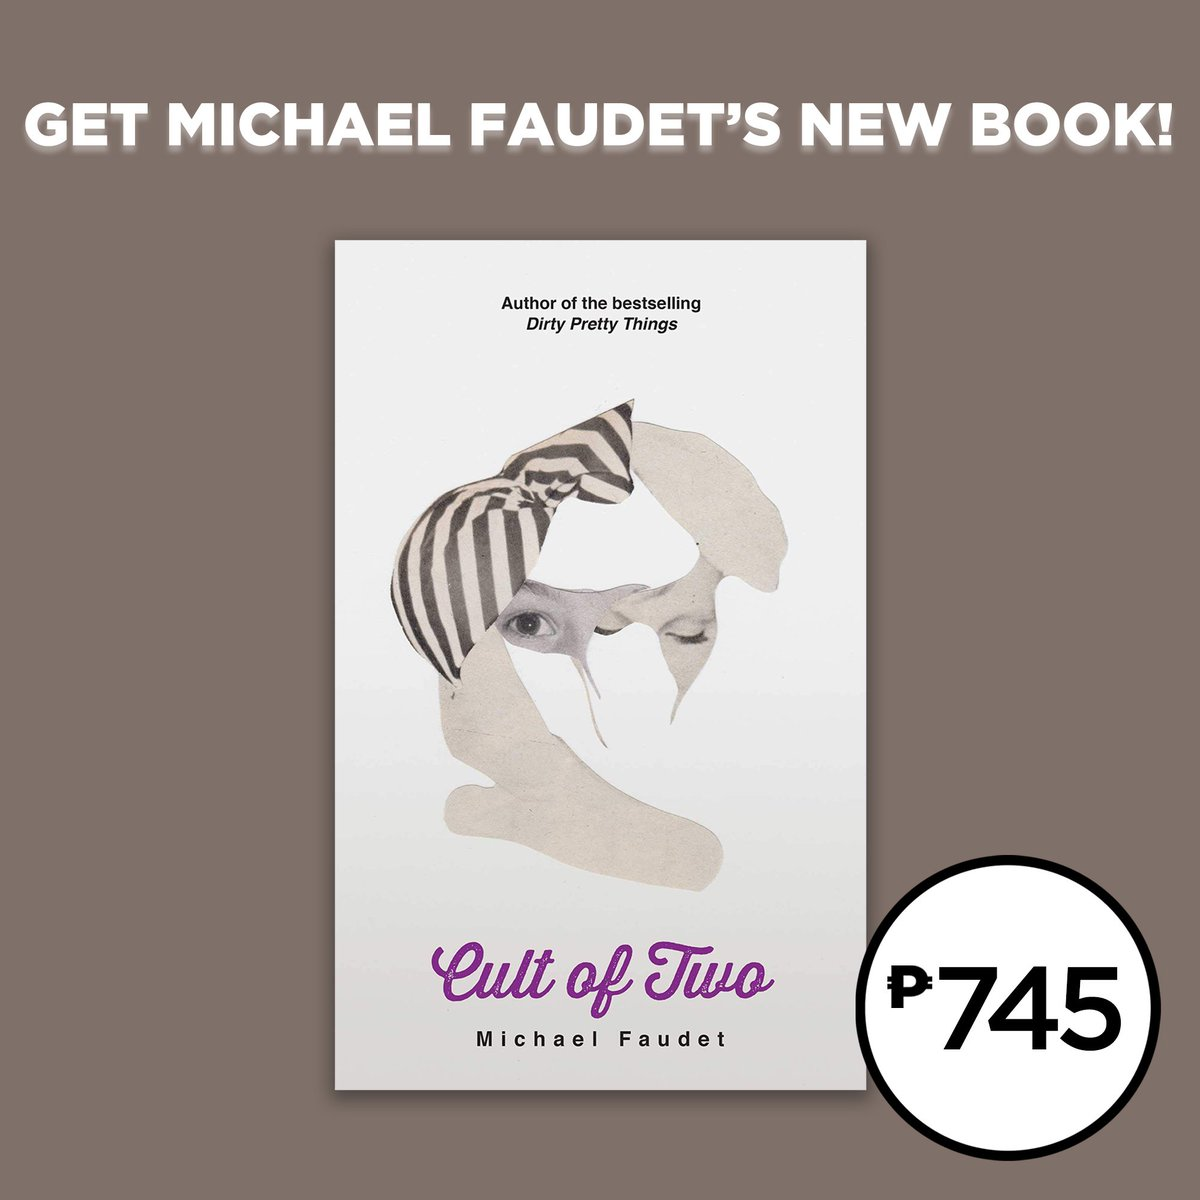 Only P745 for Cult of Two by Michael Faudet. Get it in selected branches nationwide or shop online: . #NBSNewReads #NBSfinds #NBSeveryday